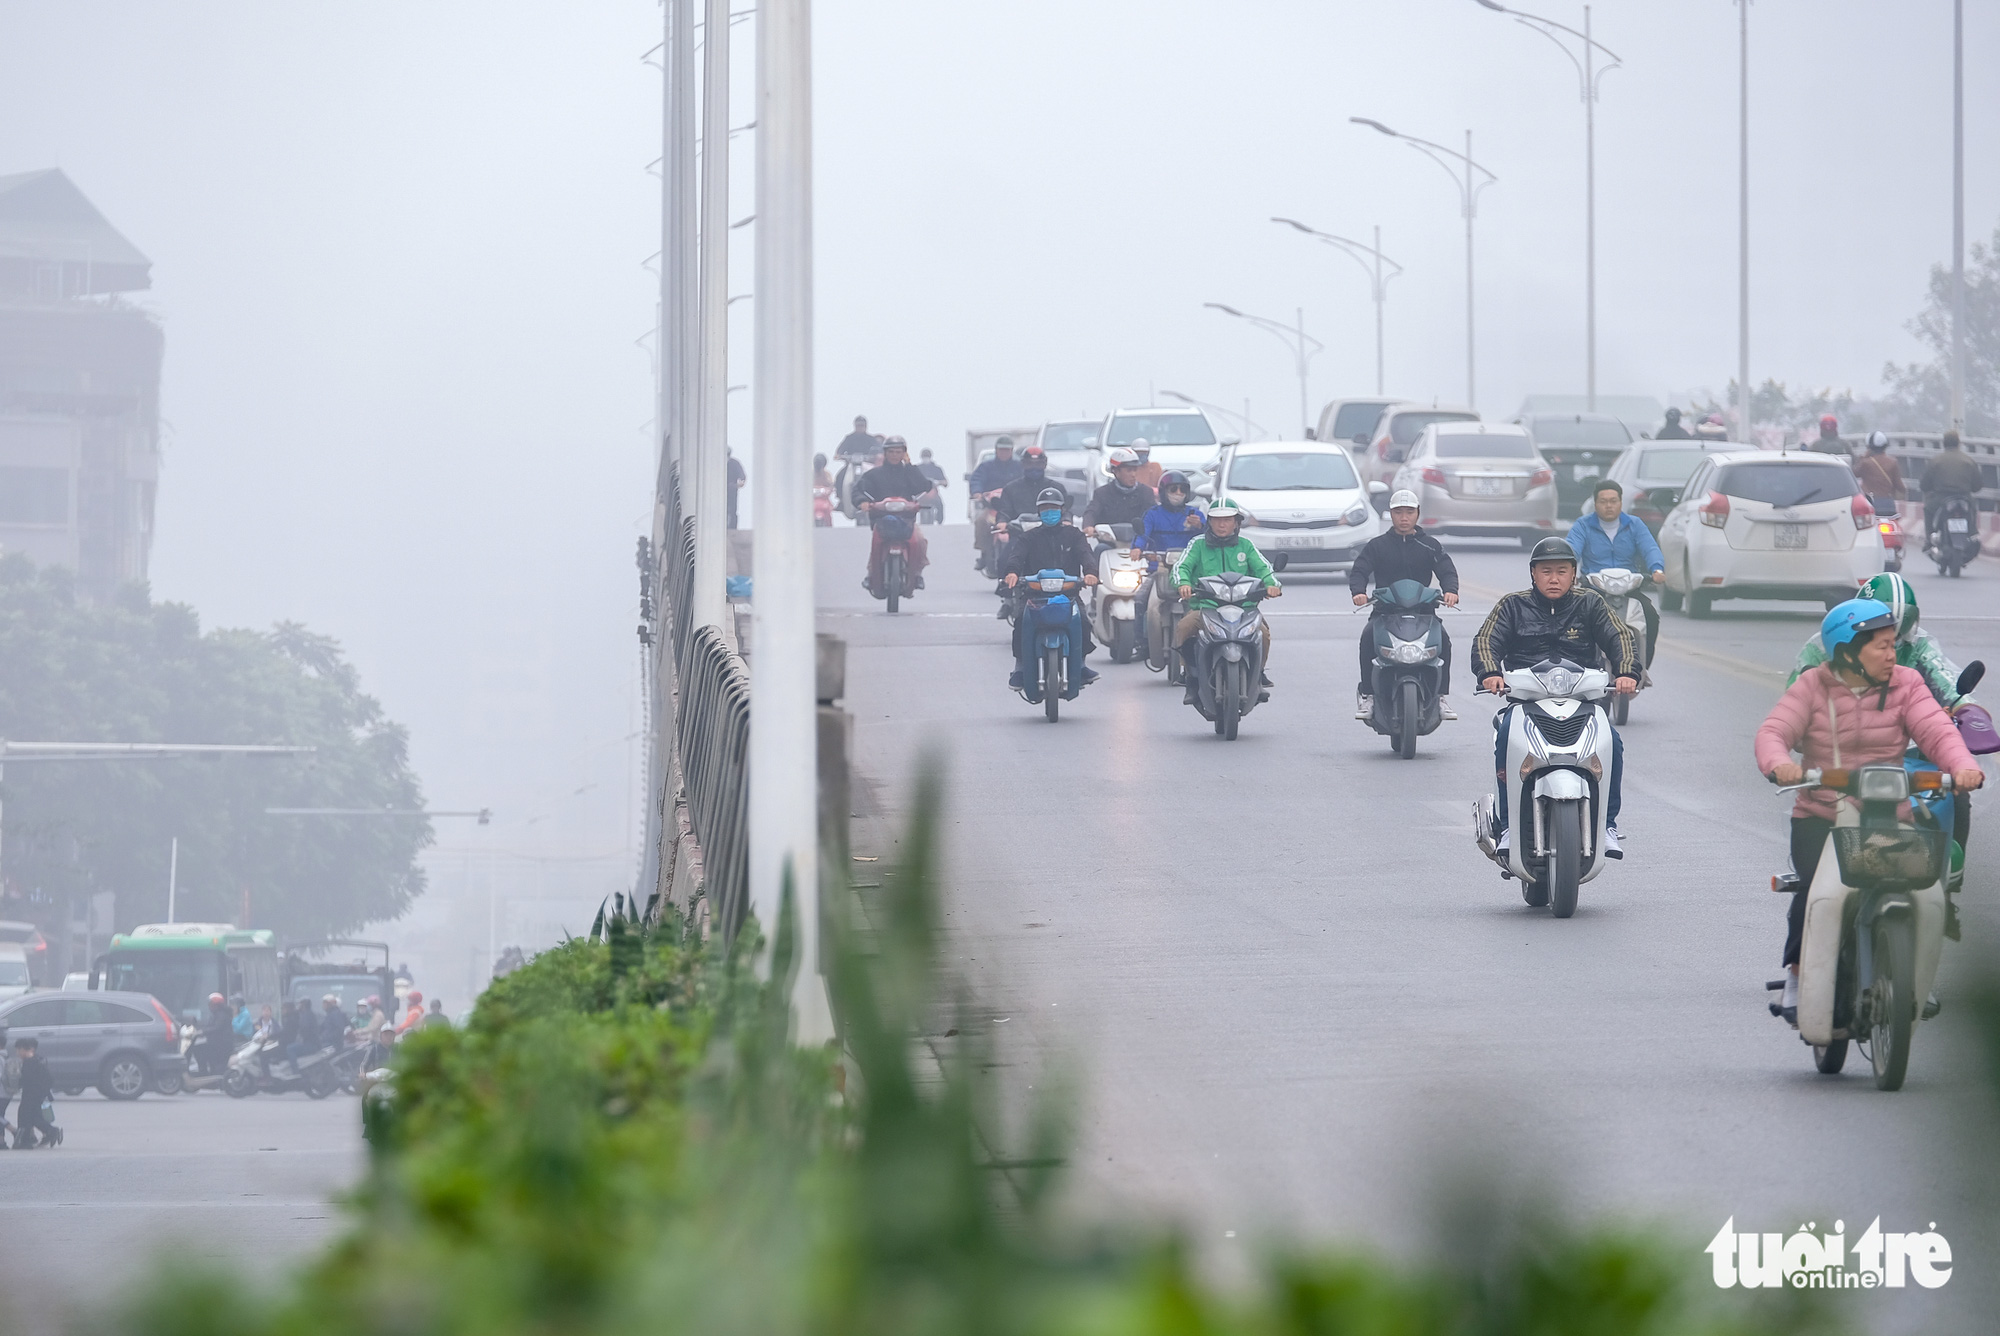 Commuters travel on Nguyen Chi Thanh overpass in Hanoi on the morning of December 24, 2019.